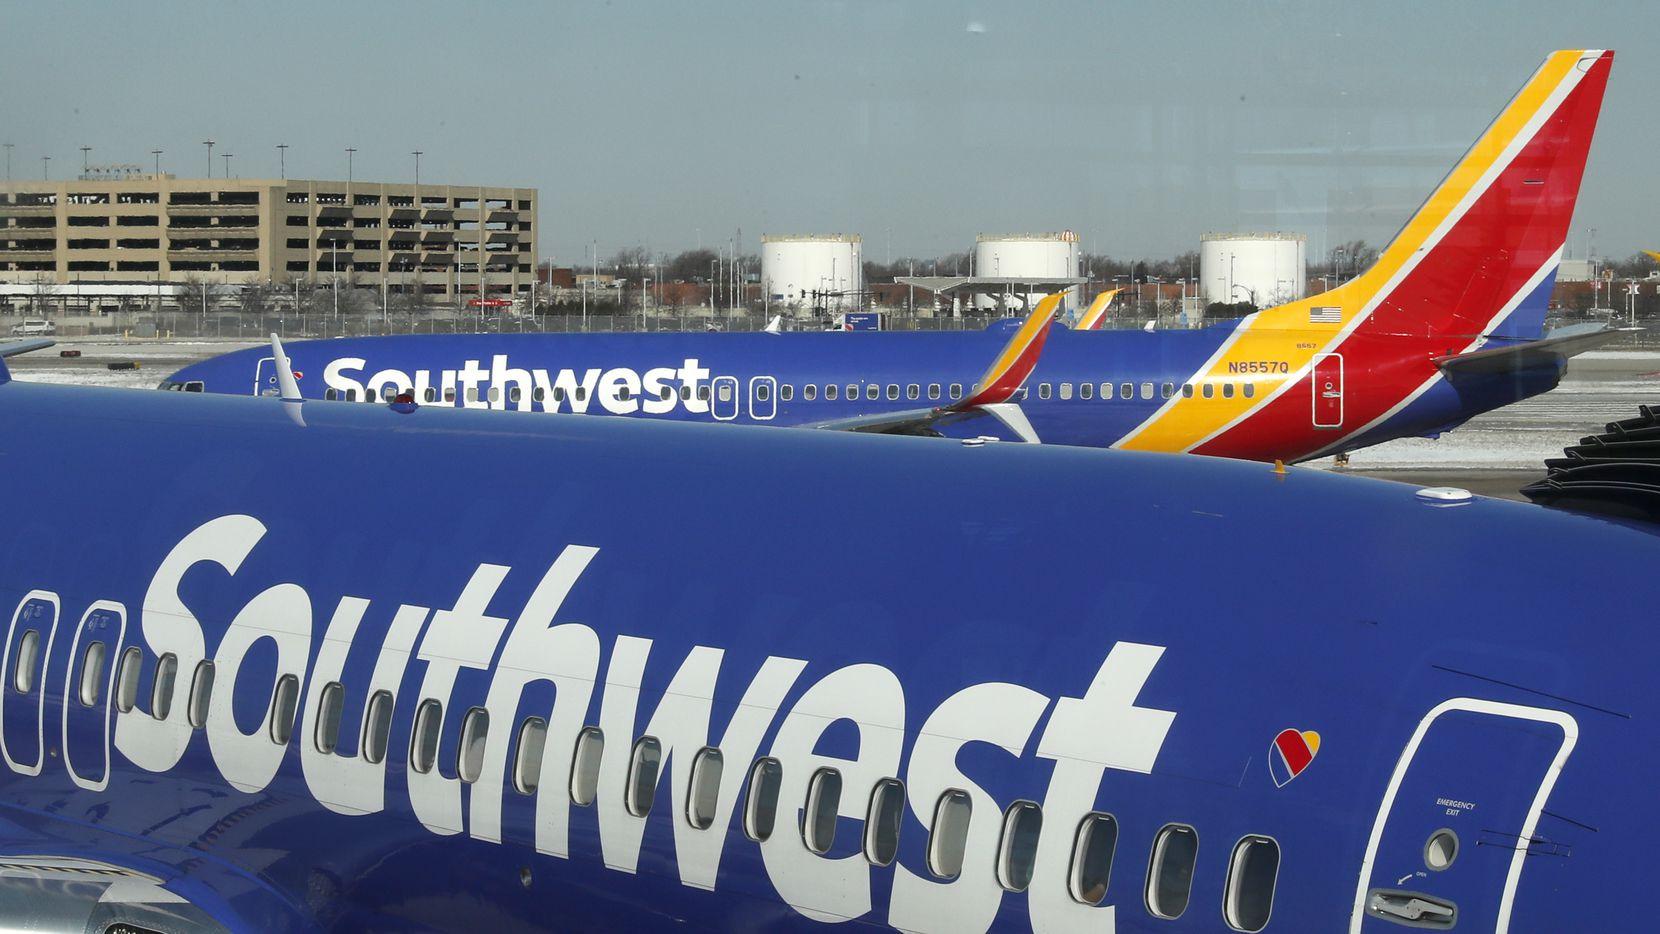 An inspection turned up a 12-inch crack in the skin of a Southwest Airlines plane's crown behind the cockpit. Airlines are required to inspect that area every 1,500 flights.